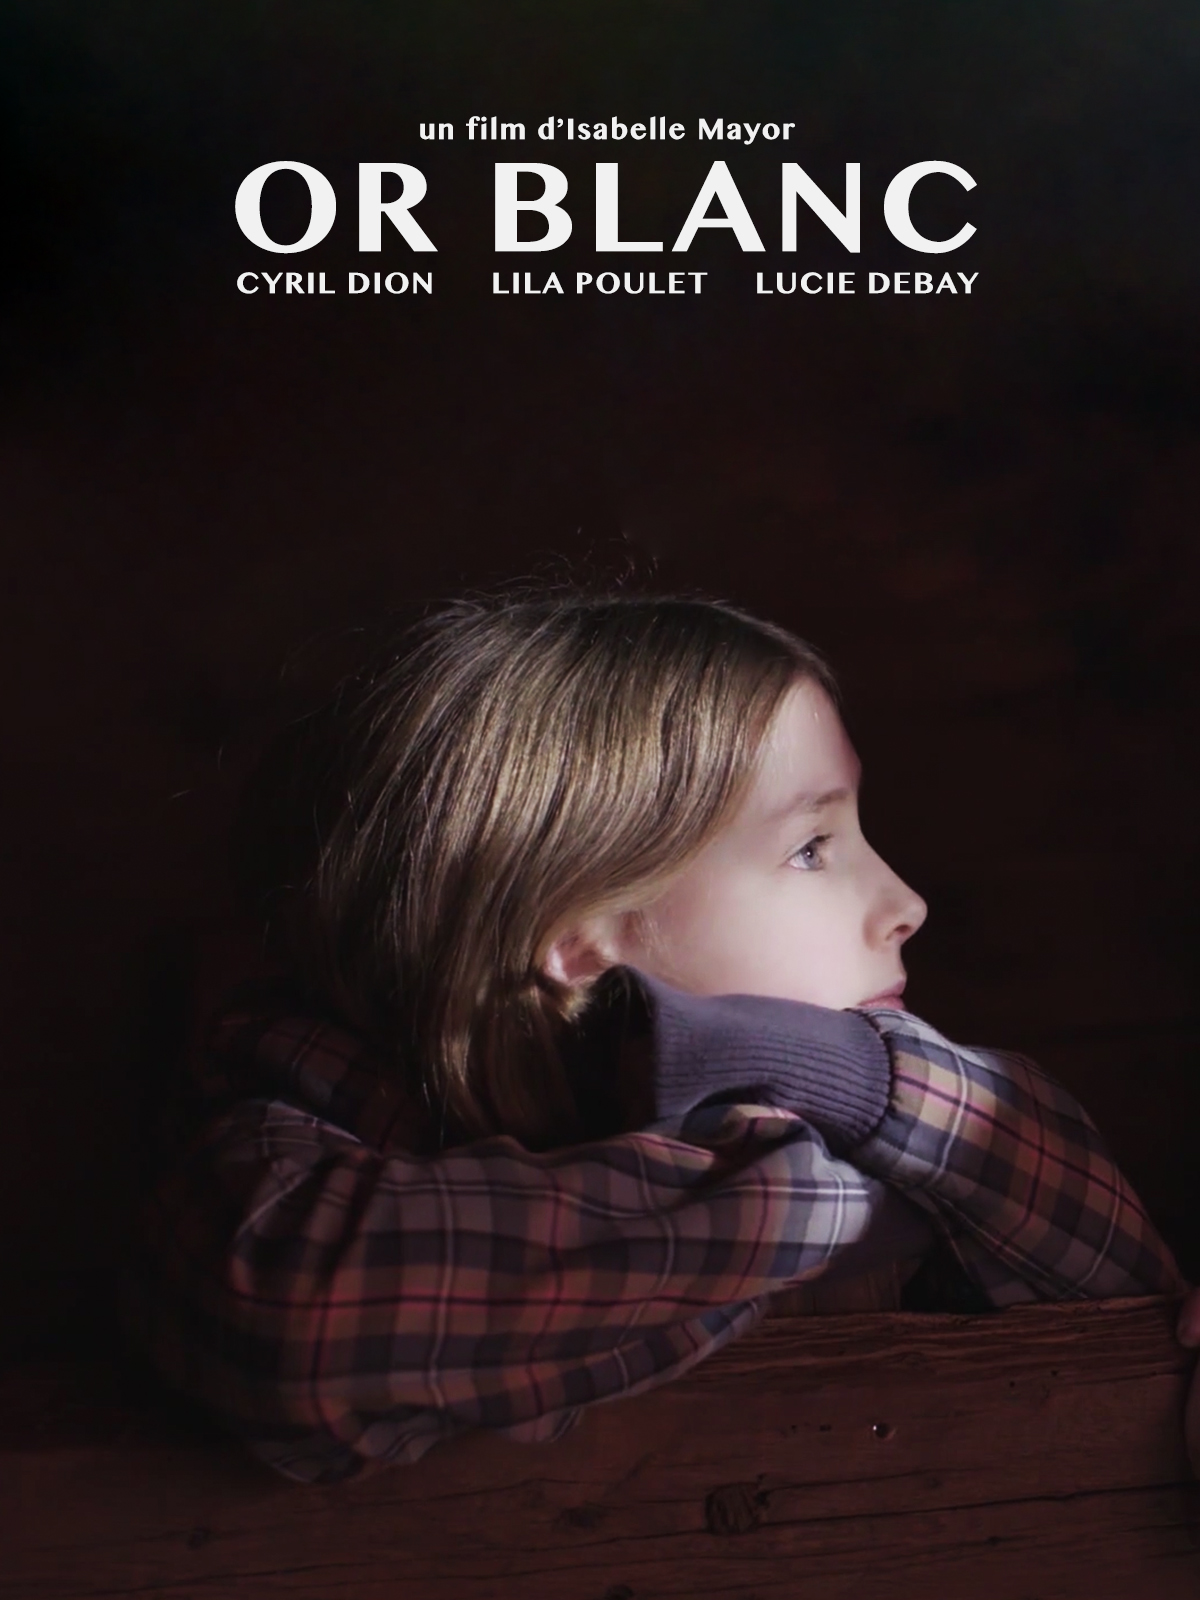 fic_or-blanc_vertical